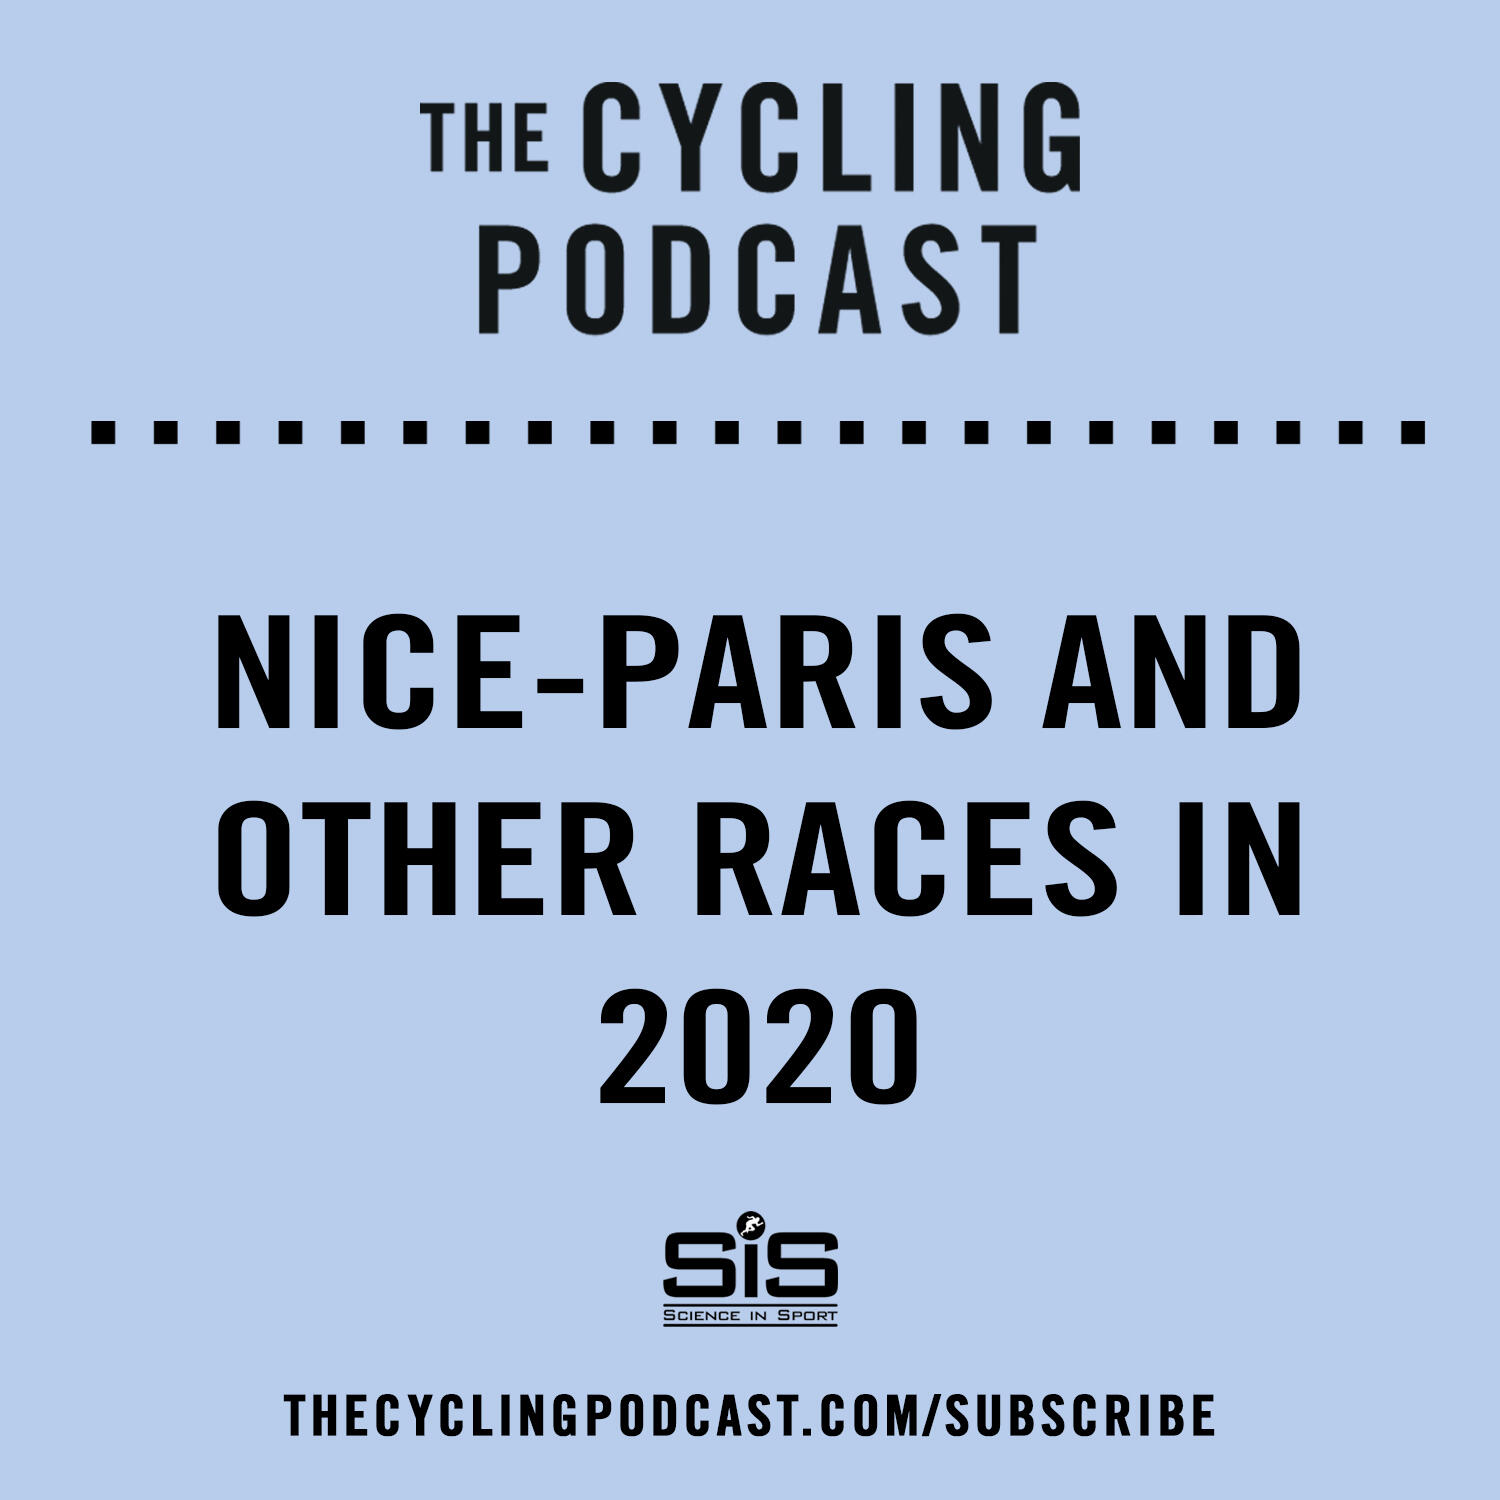 1: Nice-Paris and other races in 2020